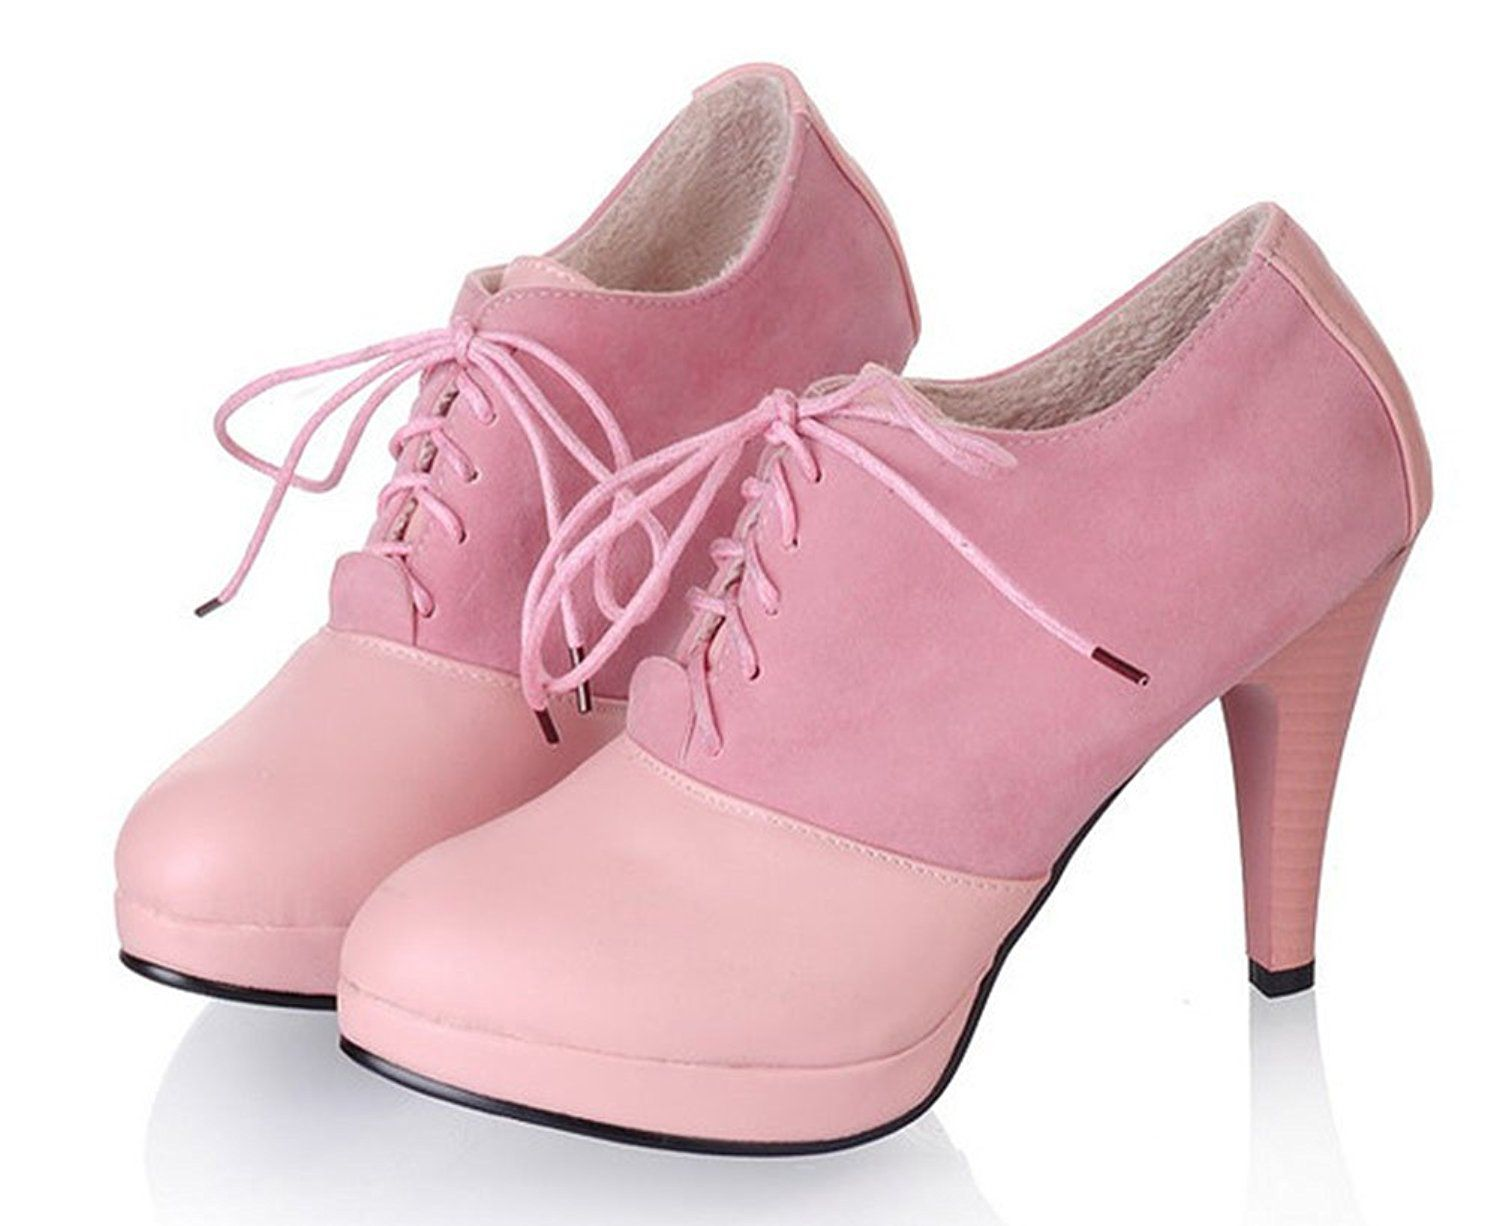 Women's Elegant Round Toe Dress Stiletto High Heels Lace Up Platform Pumps Booties Ankle Boots Shoes